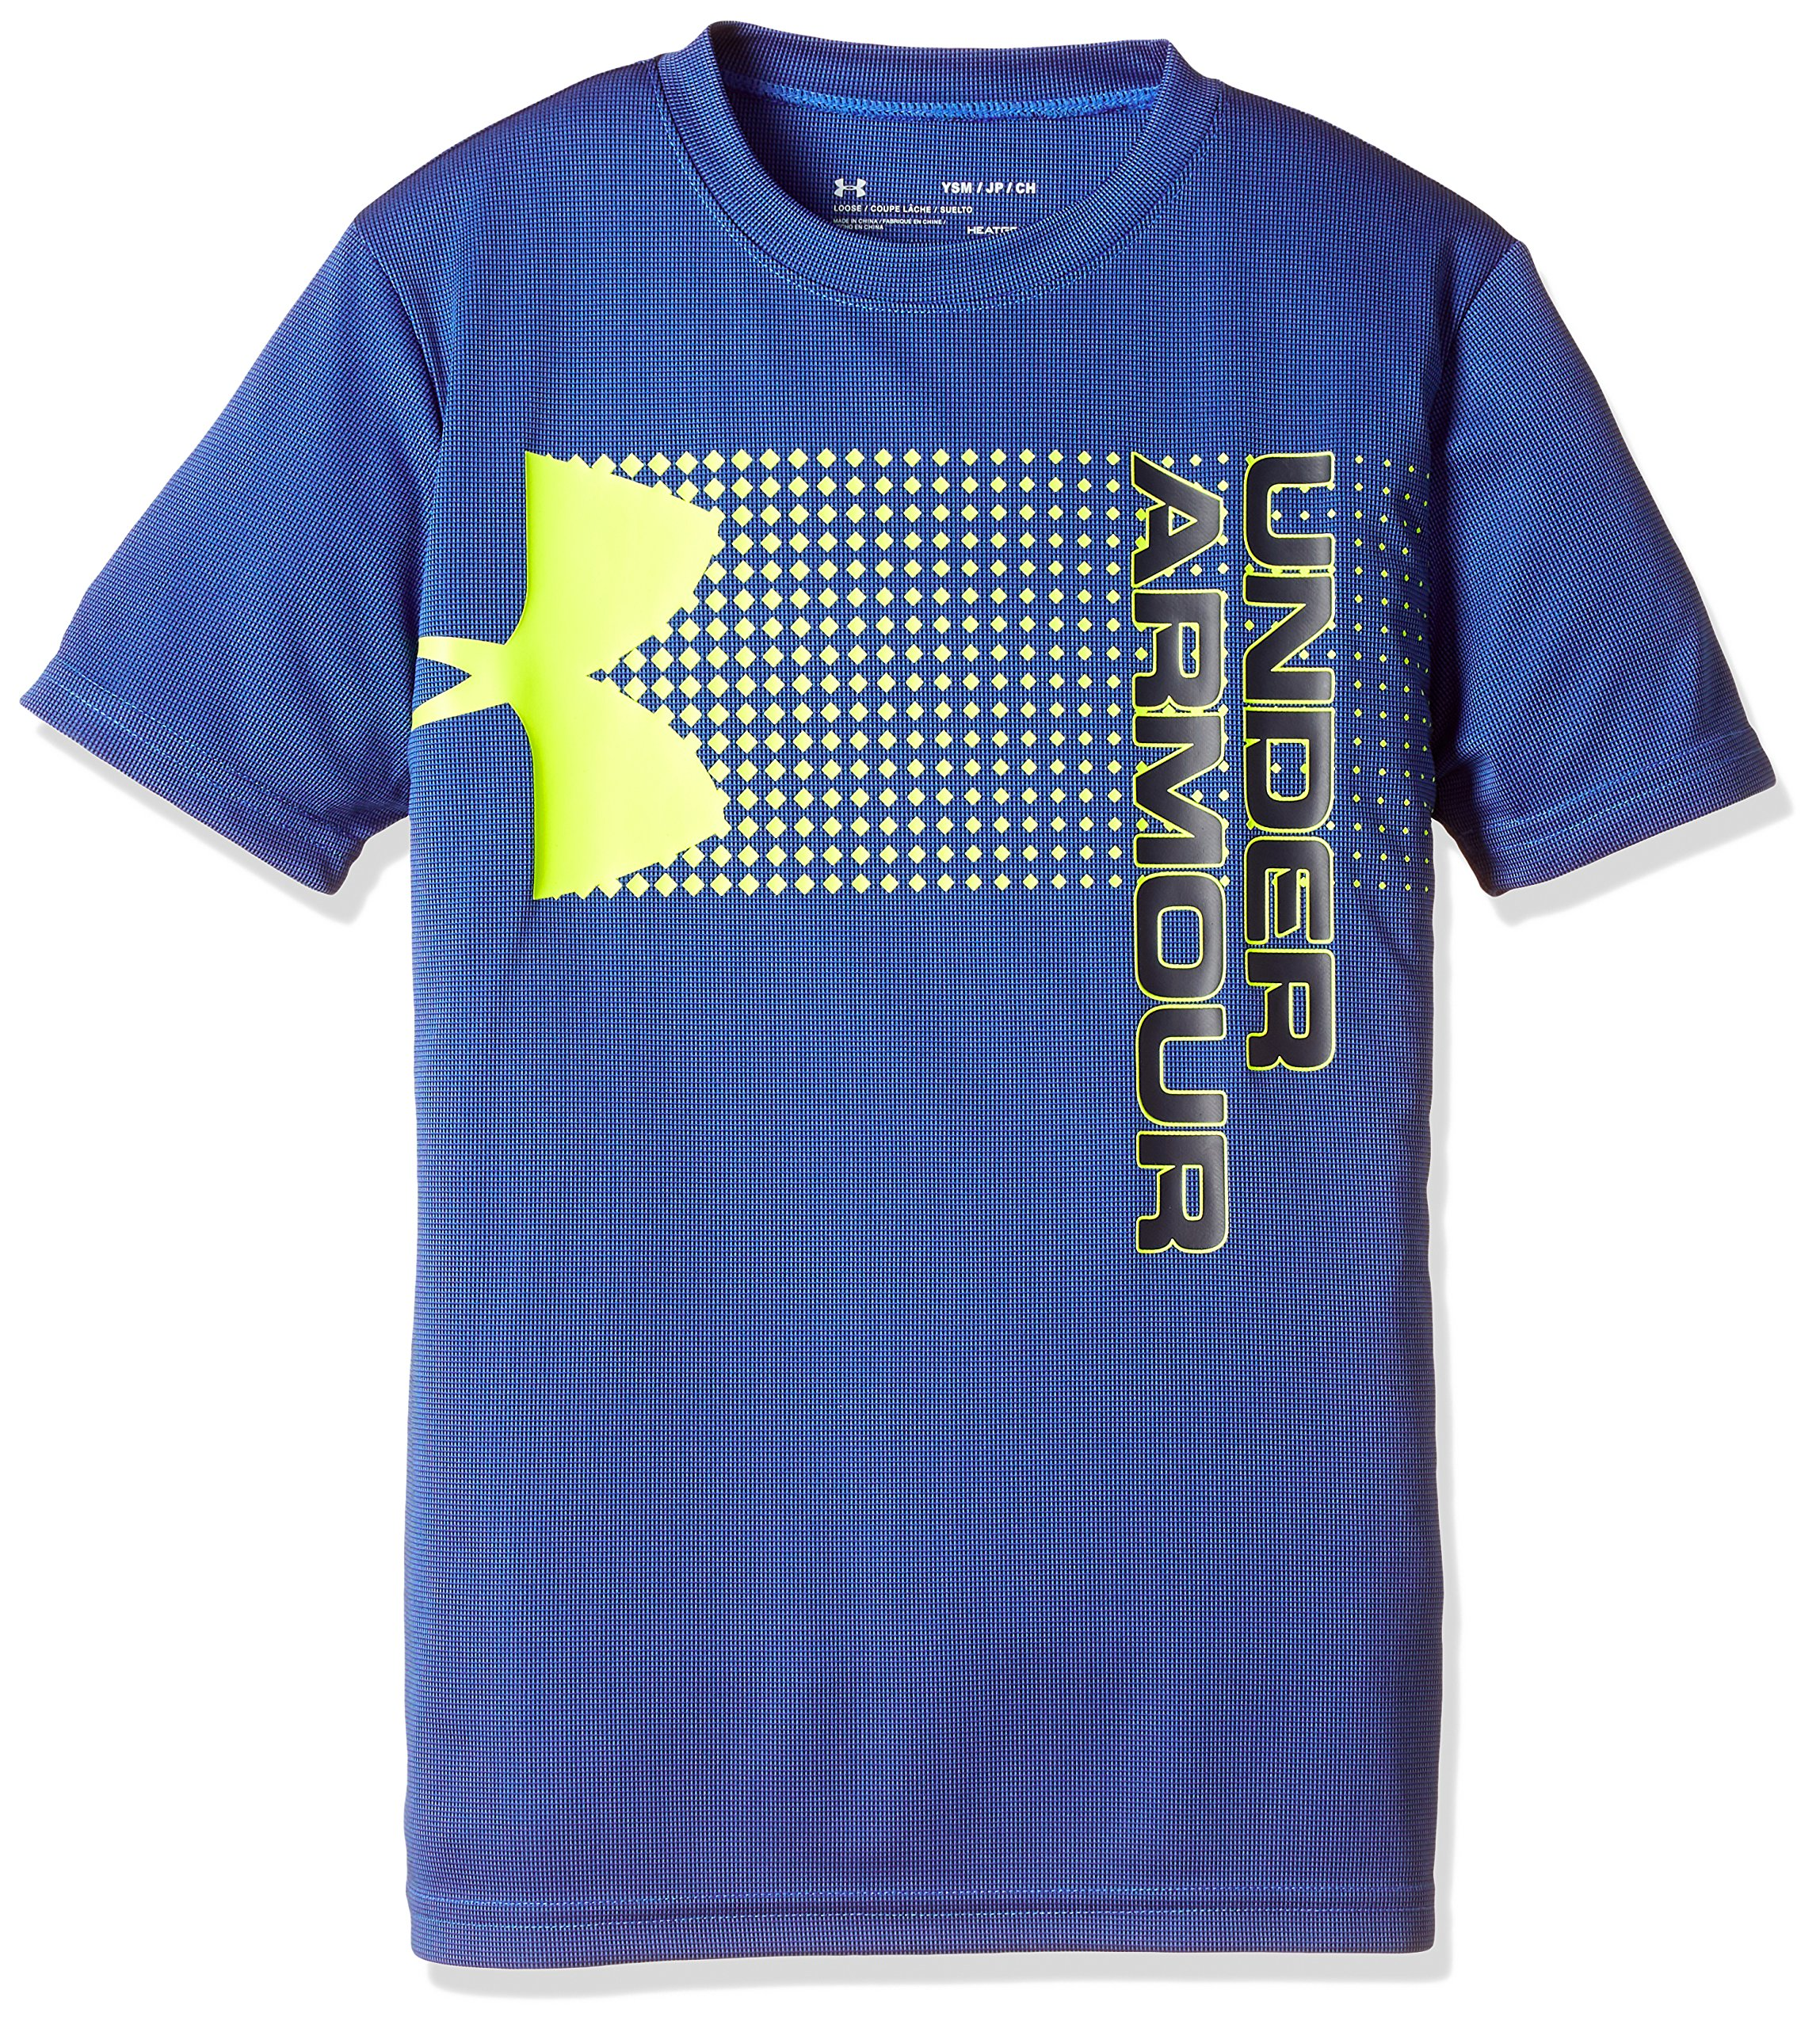 Under Armour Kids Boy's Crossfade Tee (Big Kids) Mediterranean/Mediterranean/High-Visibility Yellow Small by Under Armour (Image #1)